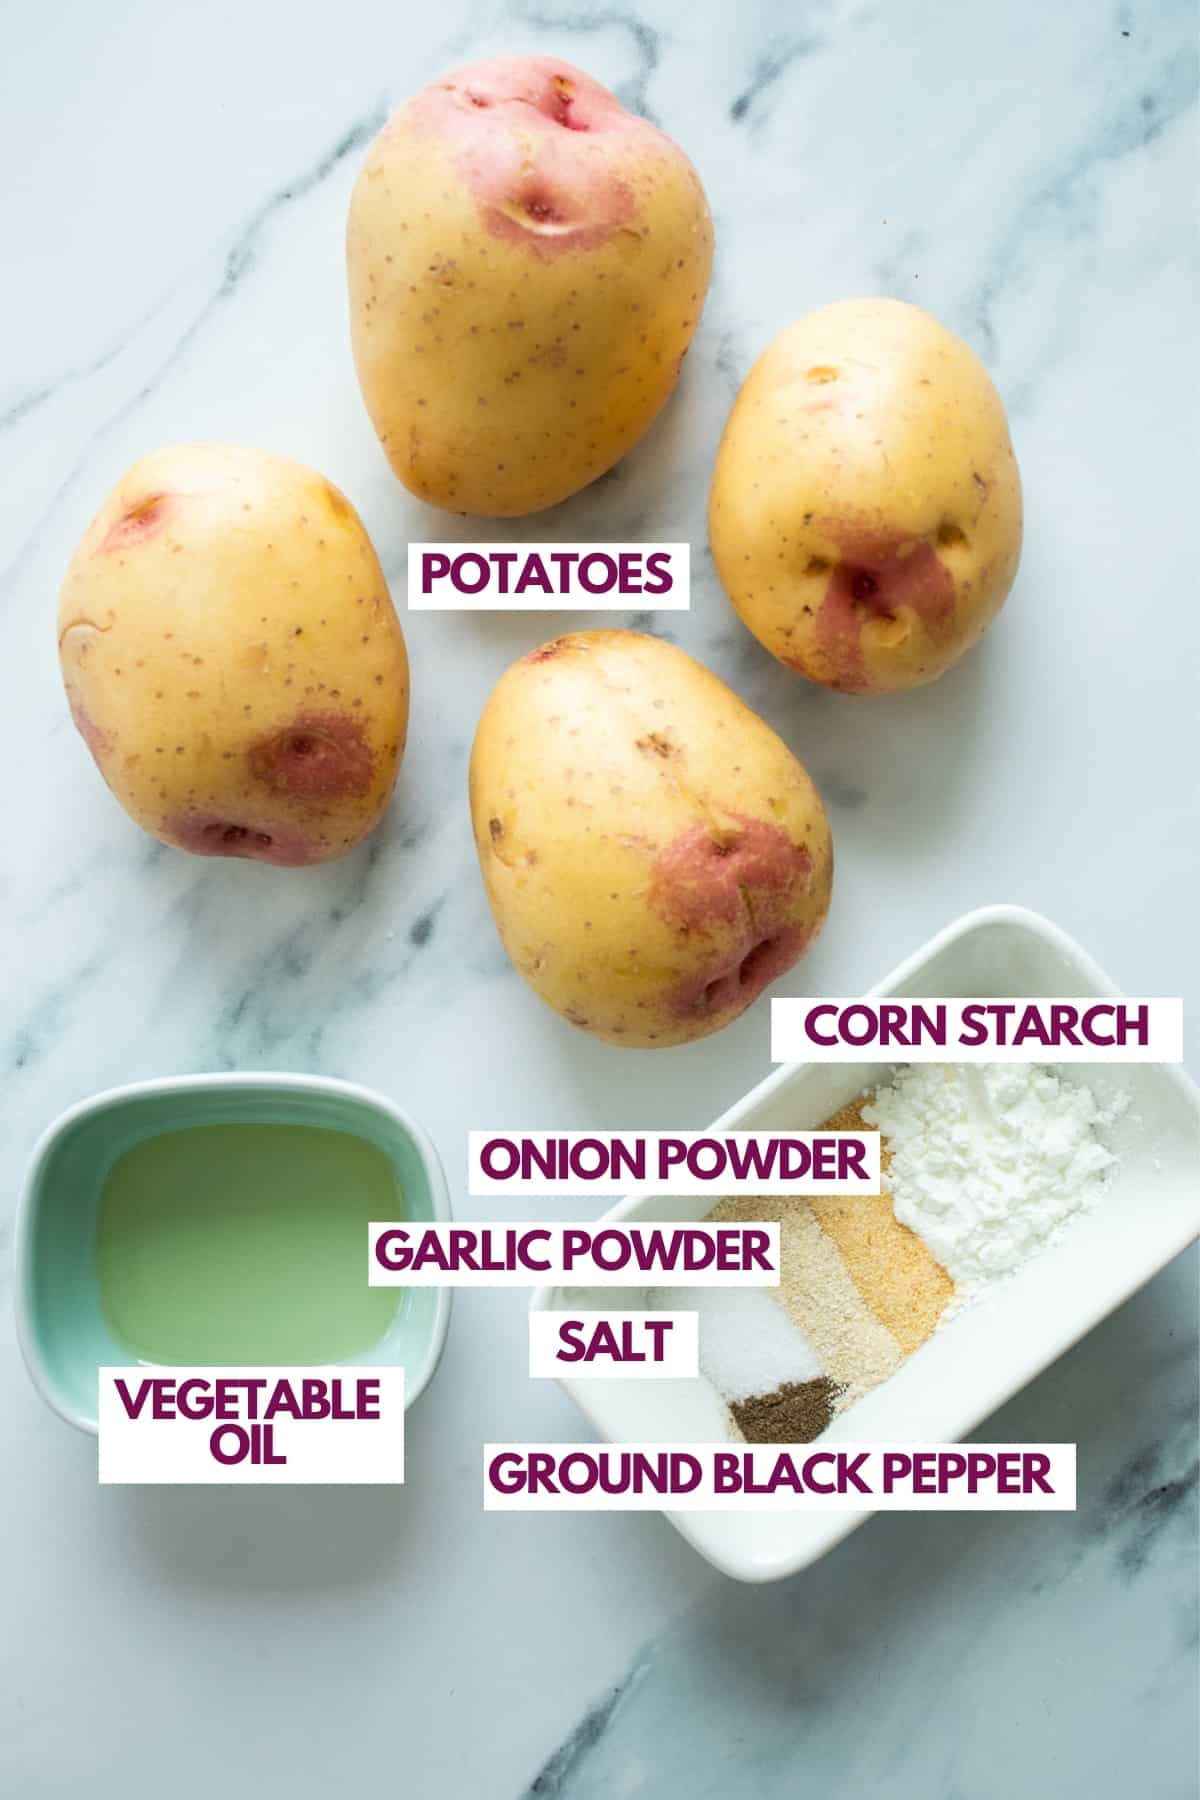 ingredients for homemade tater tots